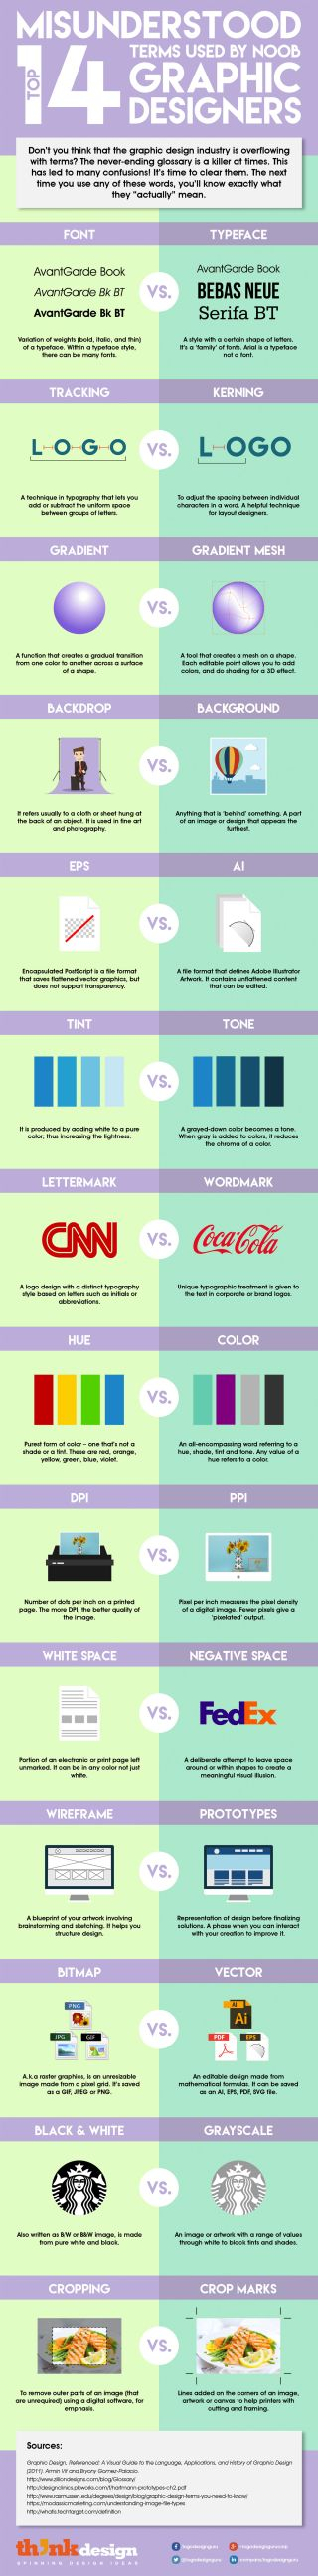 Infographic: 14 design terms you might be getting wrong | Creative Bloq